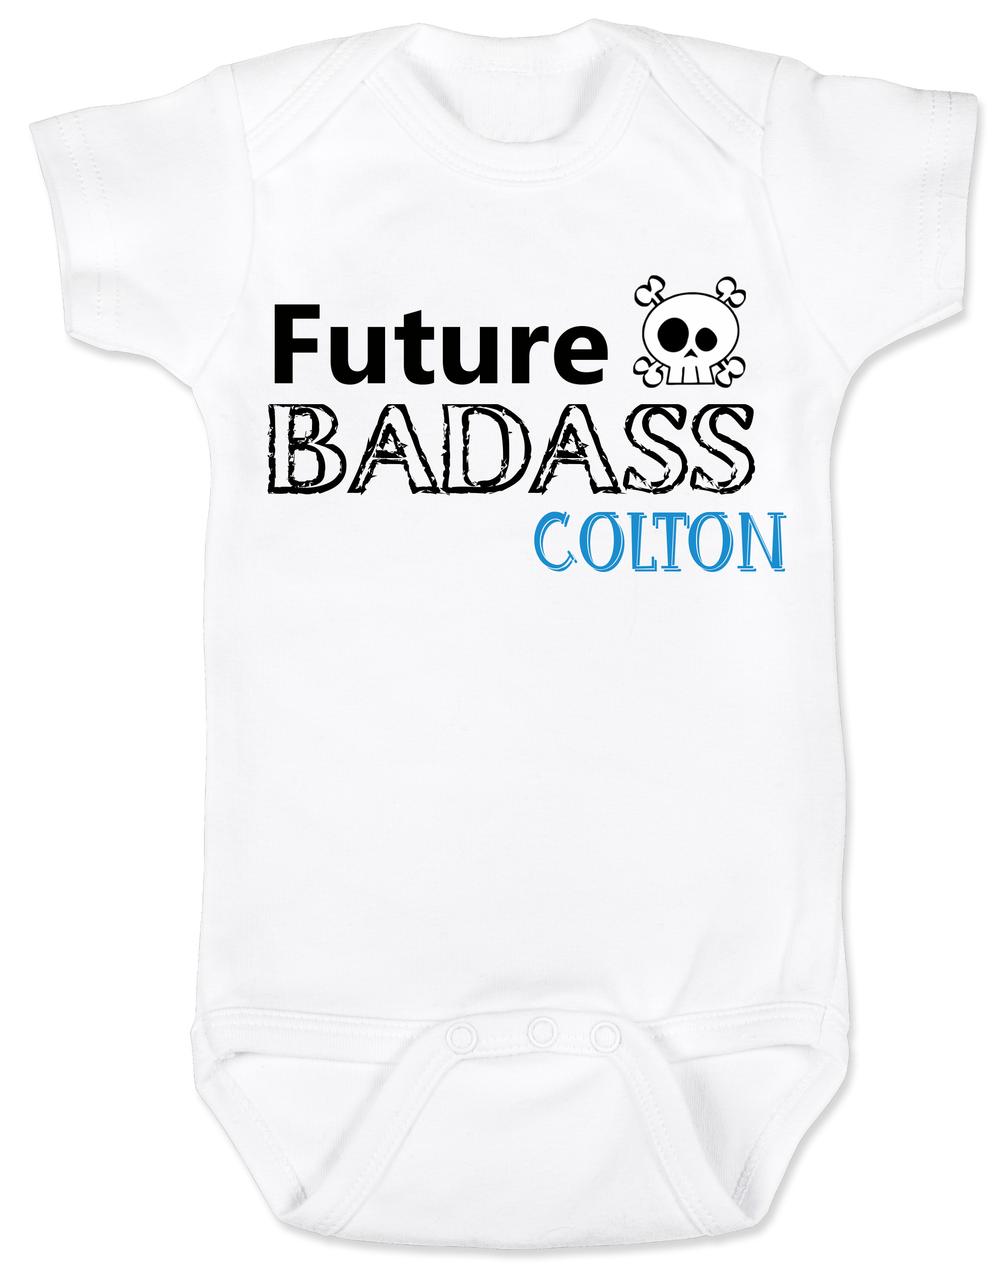 010845e3 Future Badass Personalized Baby Boy Bodysuit, skull baby onsie,  personalized with custom name